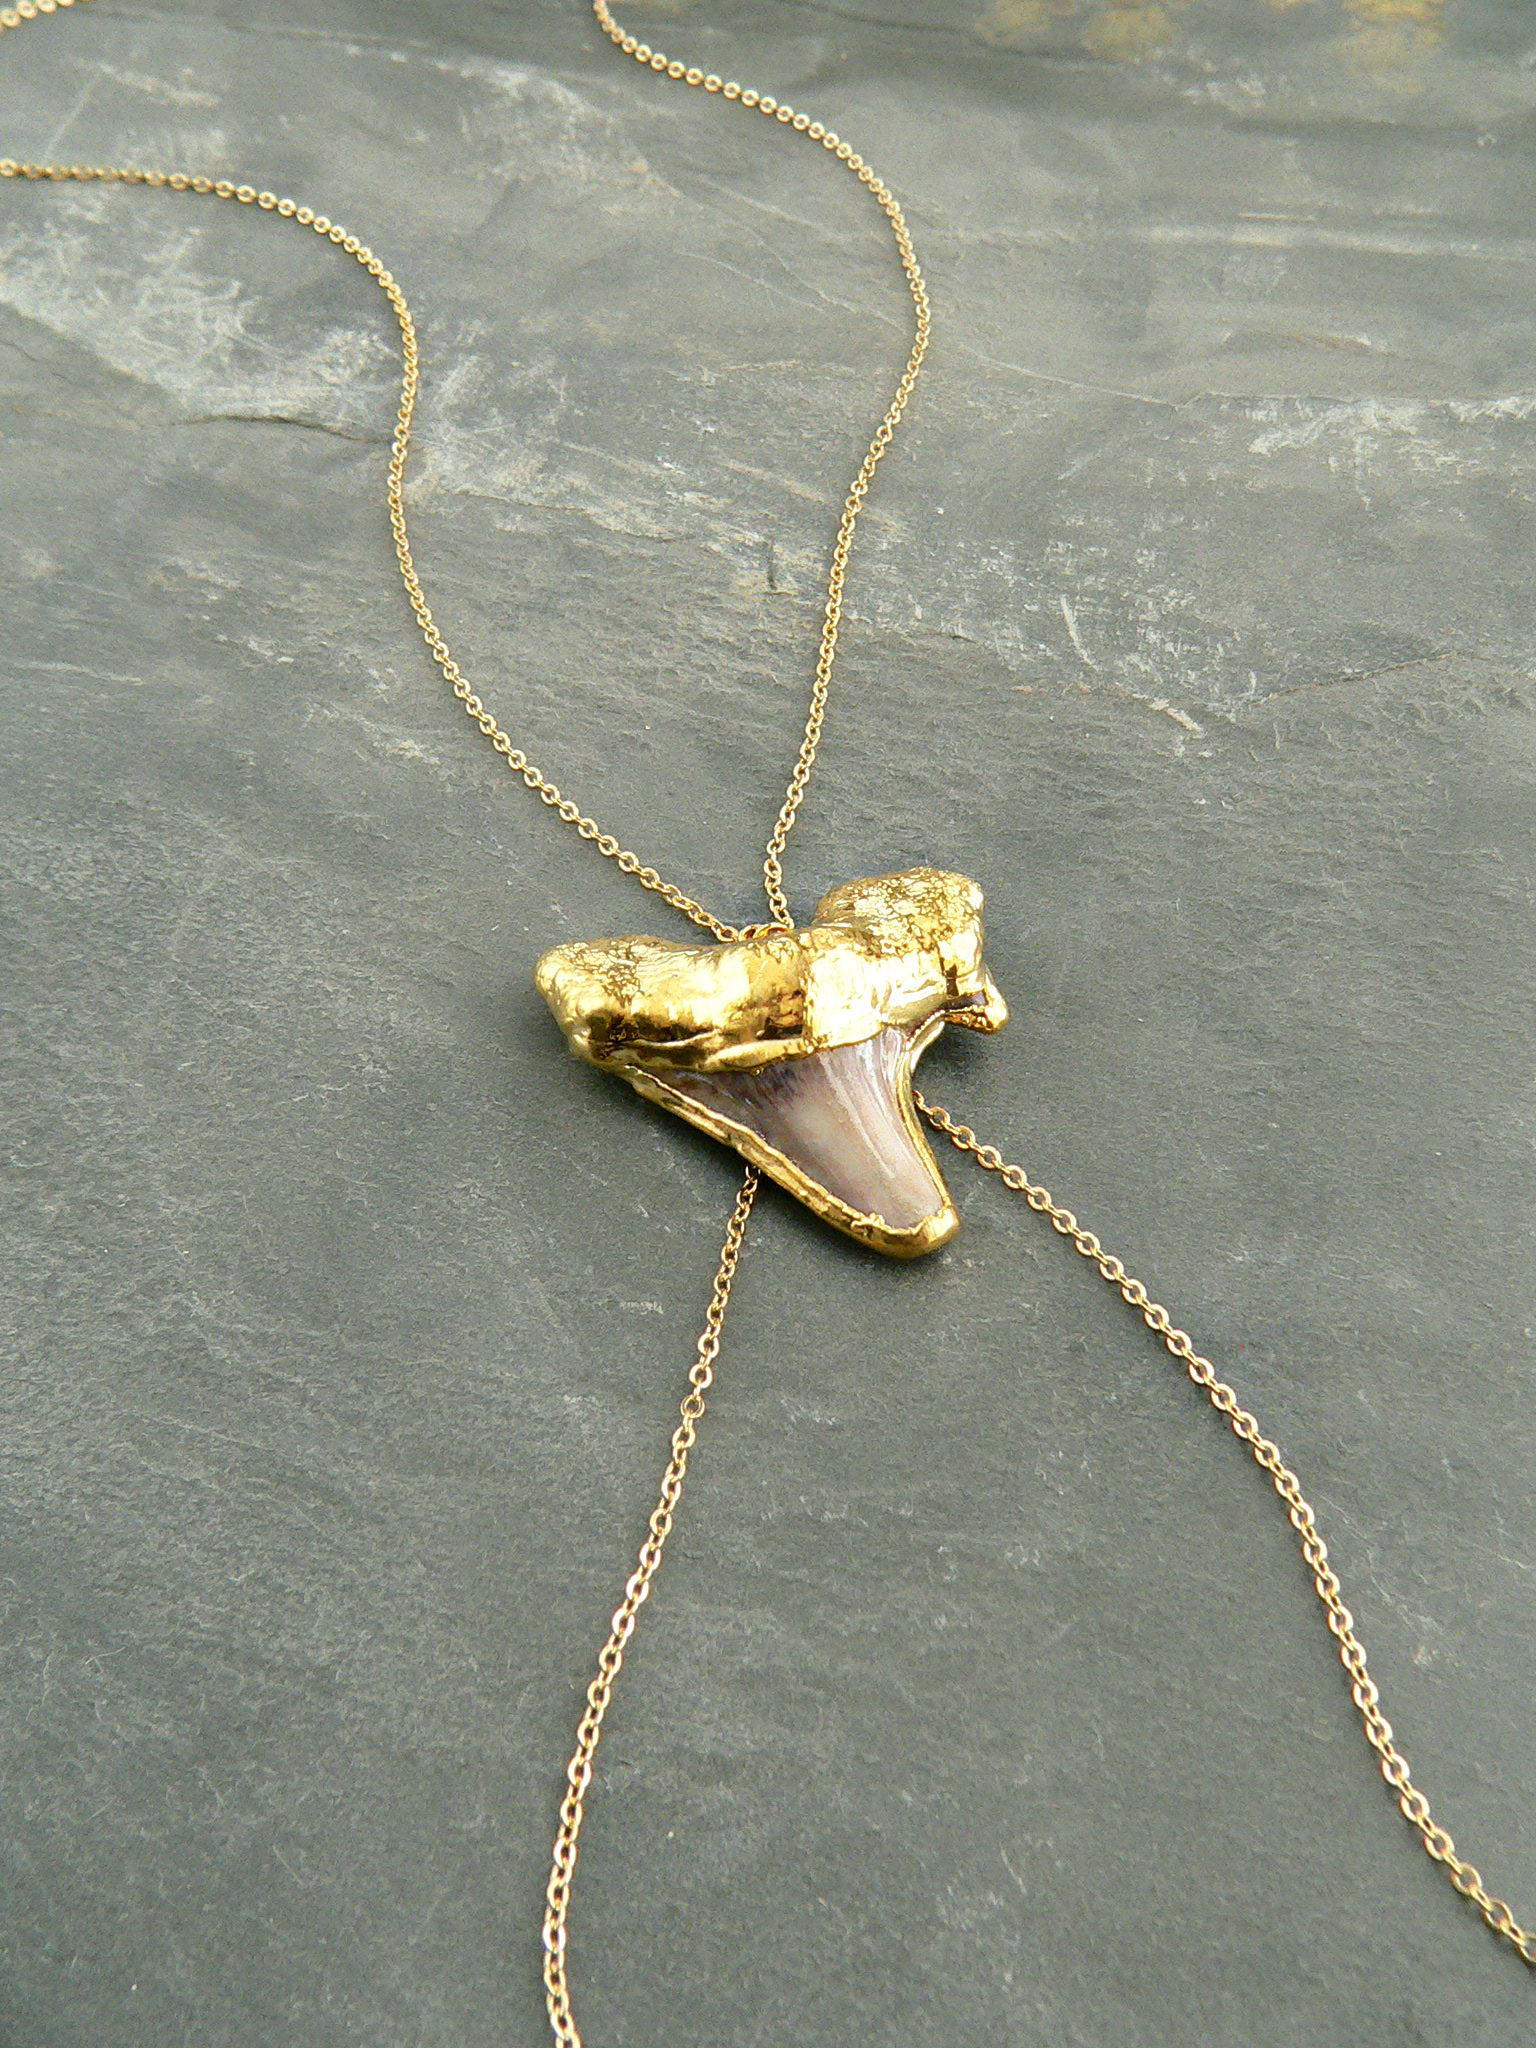 REAL SHARKTOOTH BODYCHAIN